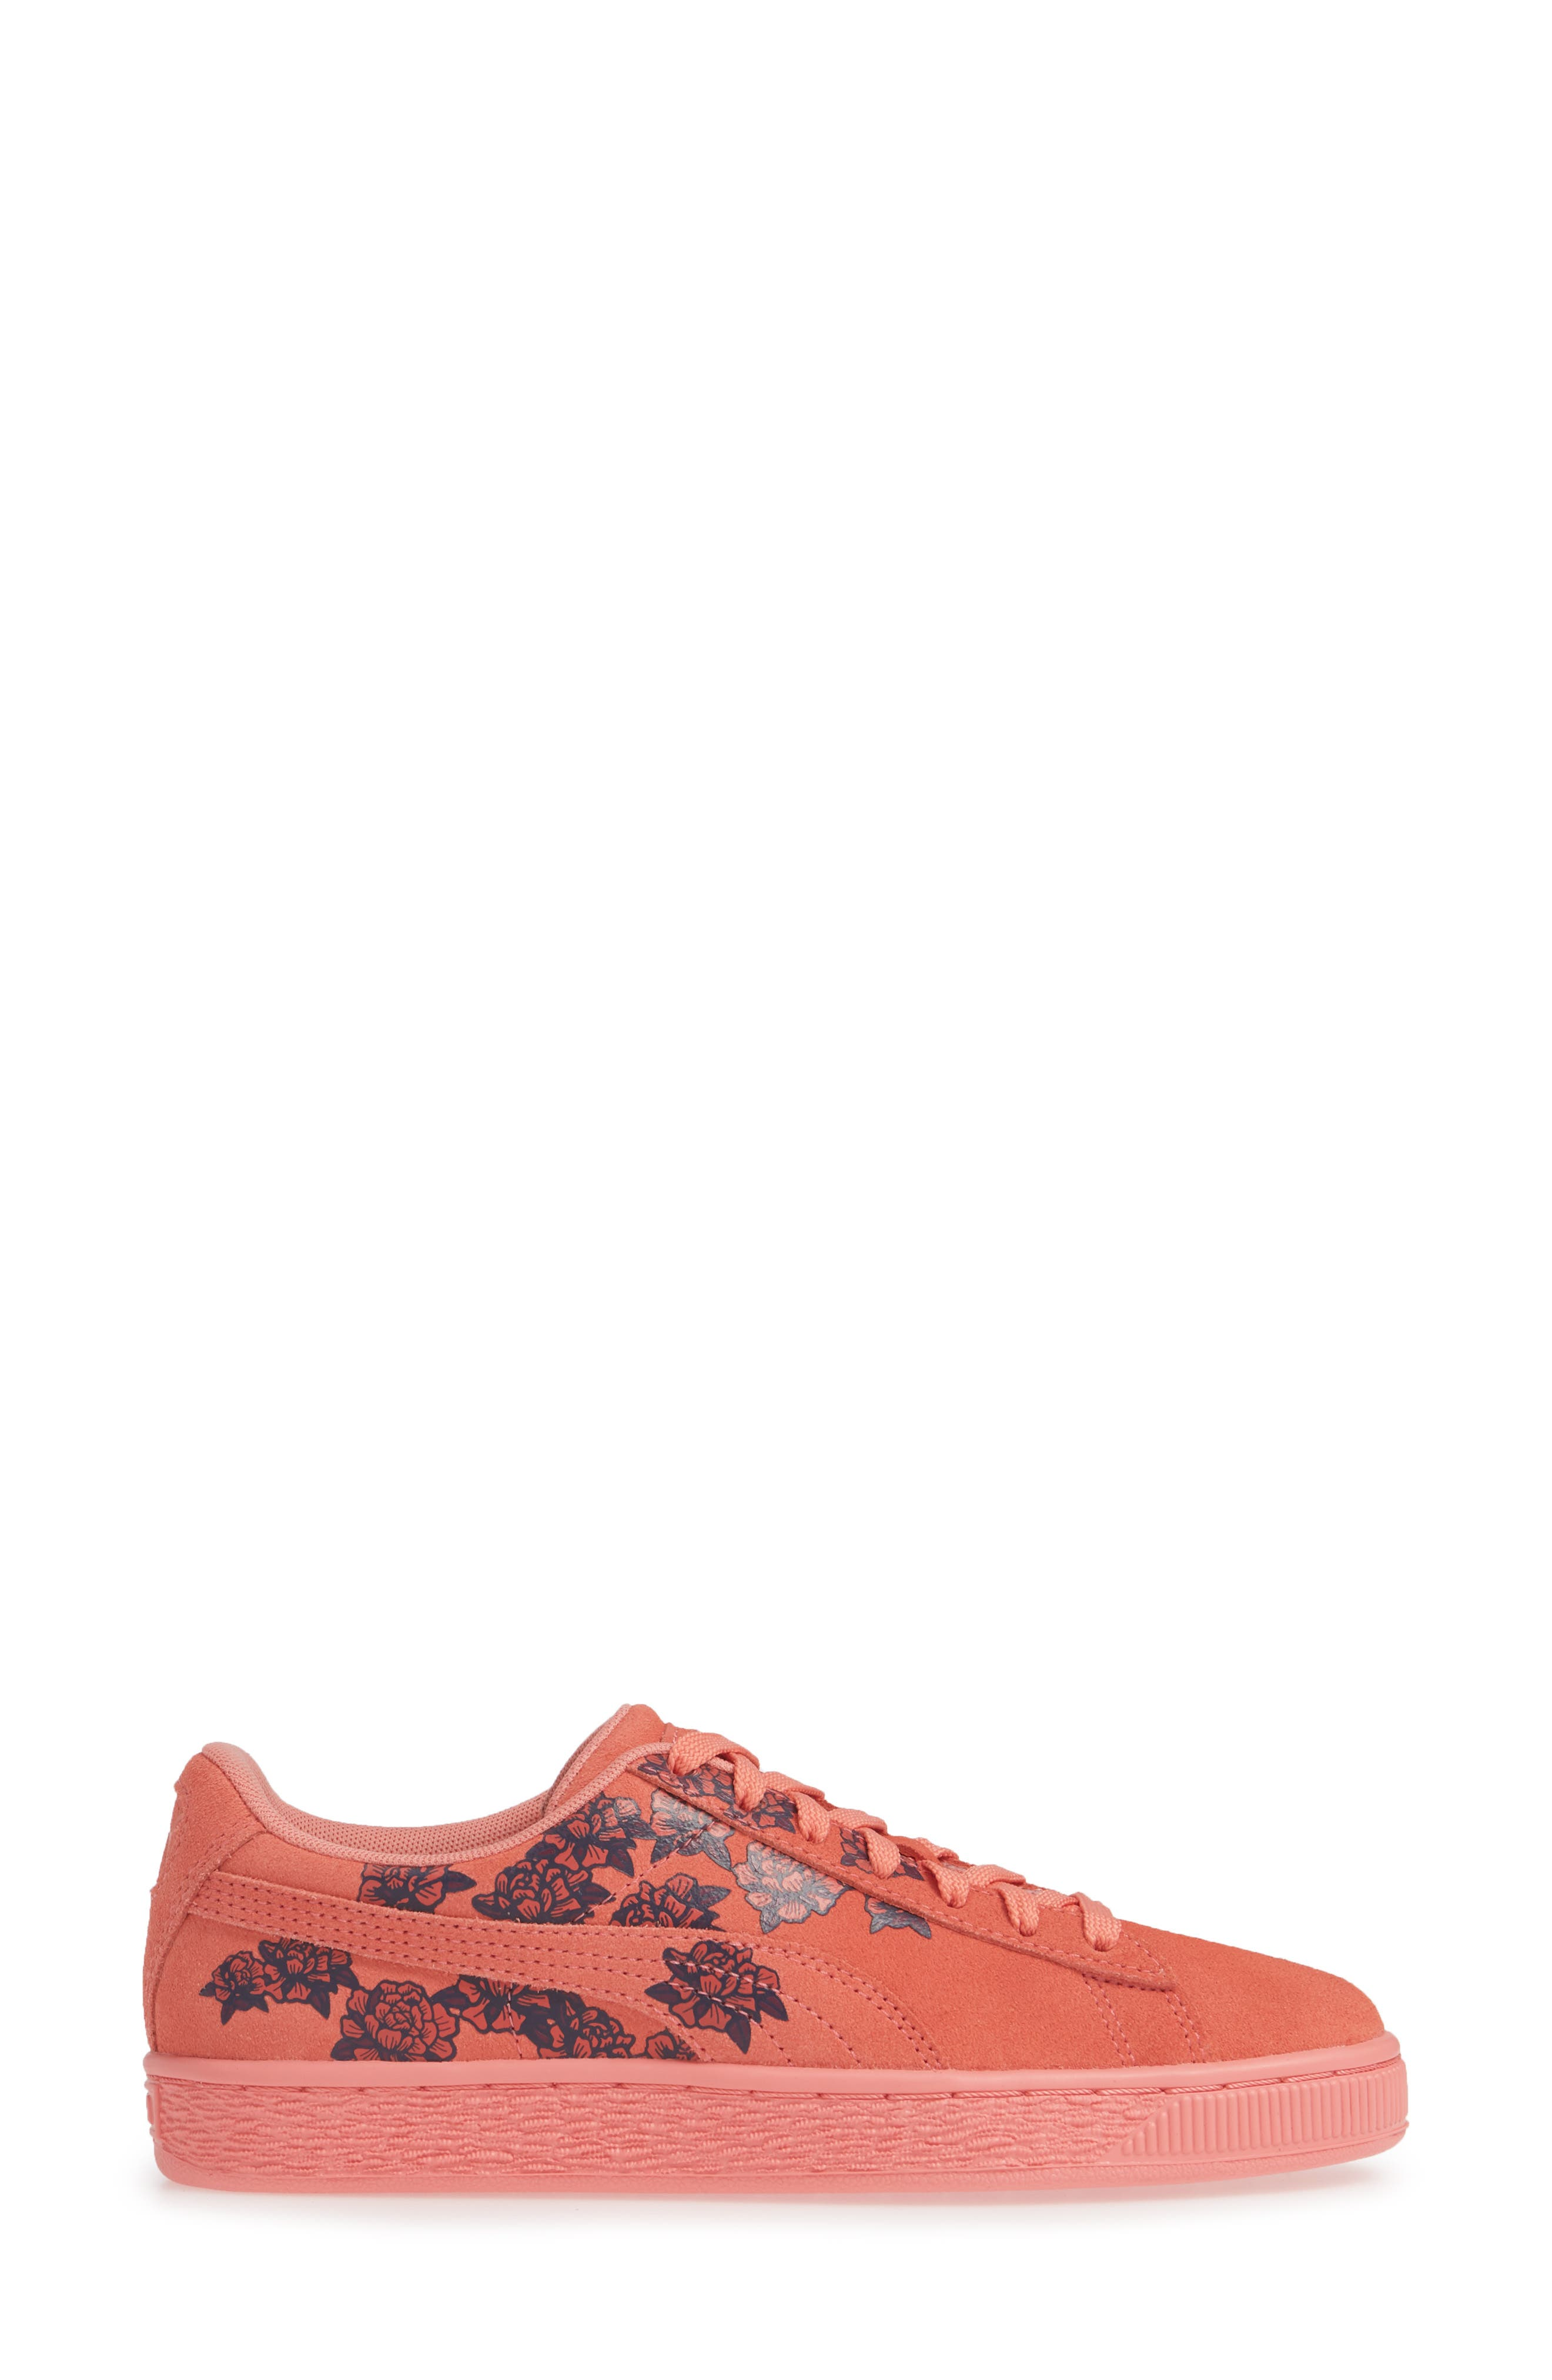 PUMA, Suede TOL Graphic Sneaker, Alternate thumbnail 3, color, SHELL PINK